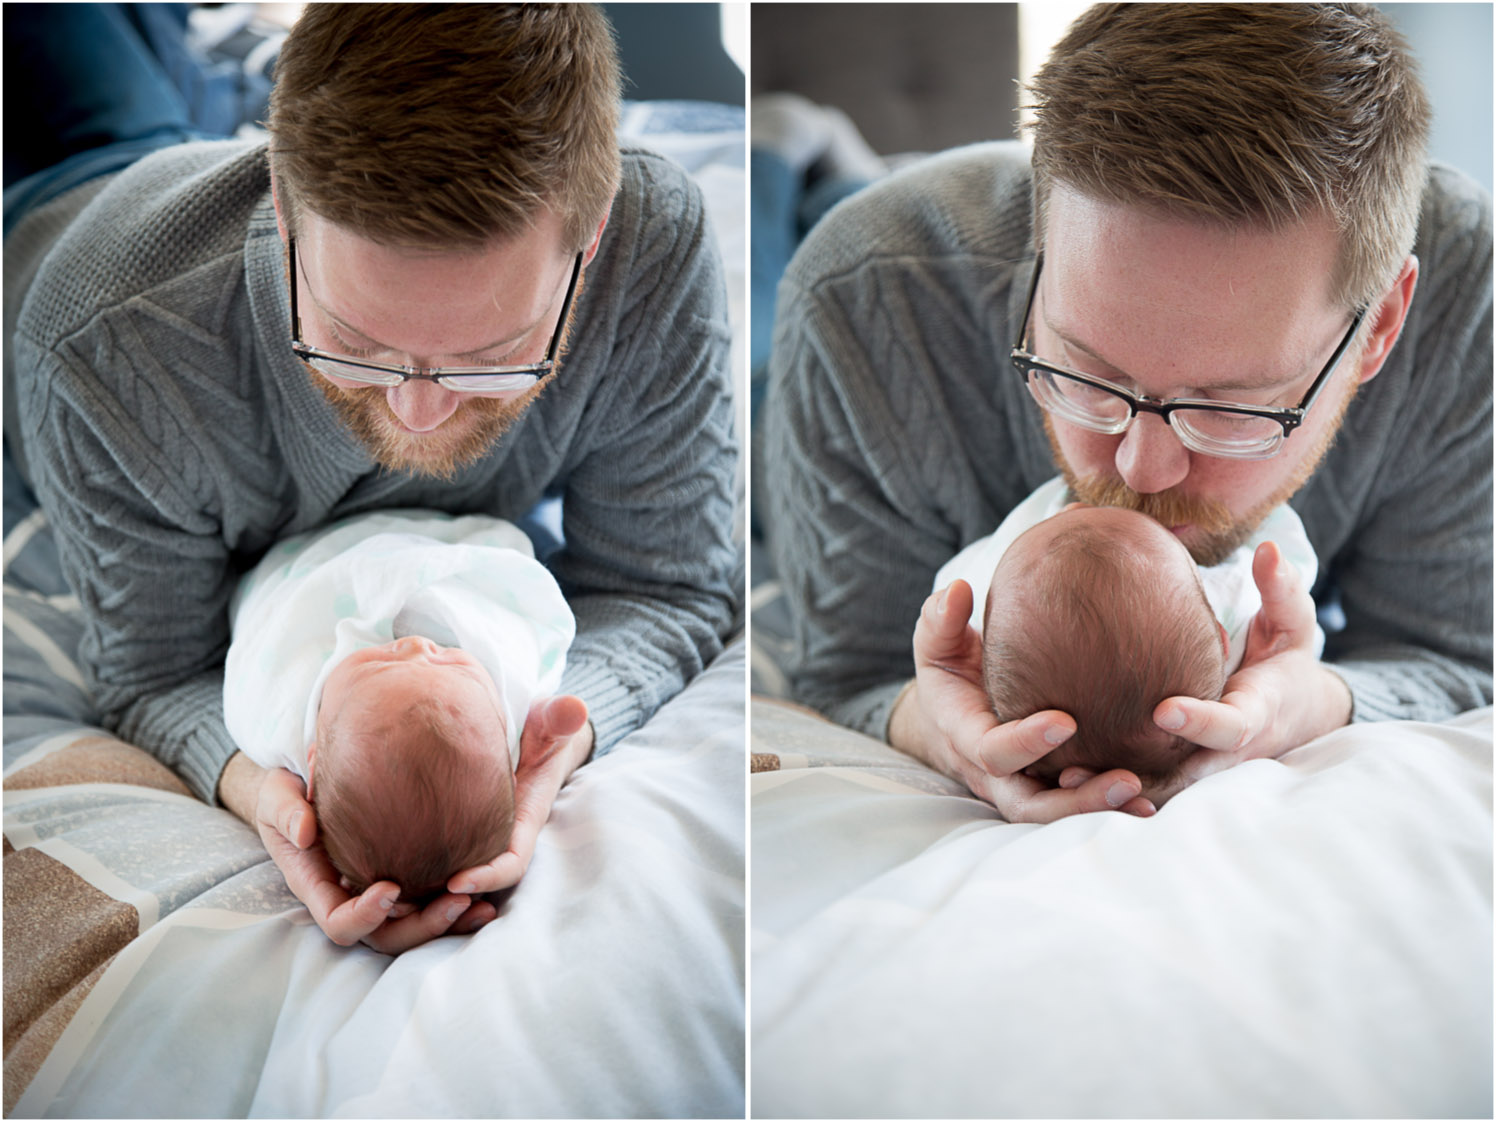 04-in-home-lifestyle-newborn-baby-boy-session-father-son-new-dad-parent-love-mahonen-photography.jpg